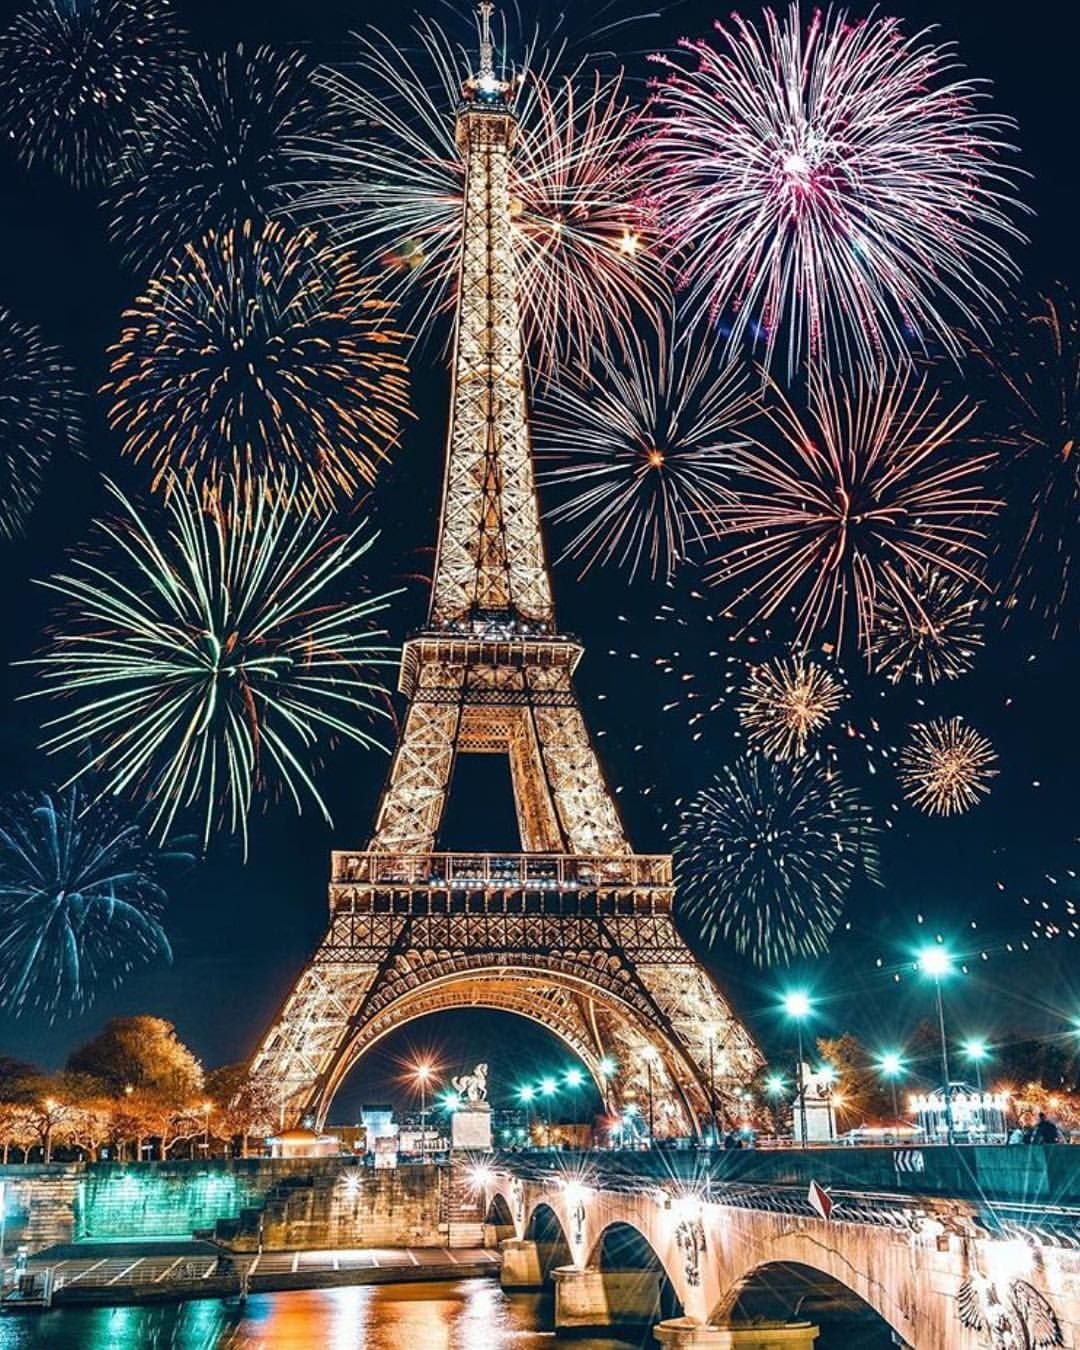 #paris #parisfrance #eiffeltower #toureiffel #eiffel #parisphotography #parisarchitecture #thingstodoinparis #visitparis #happynewyear2019 #happynewyear #eiffeltower